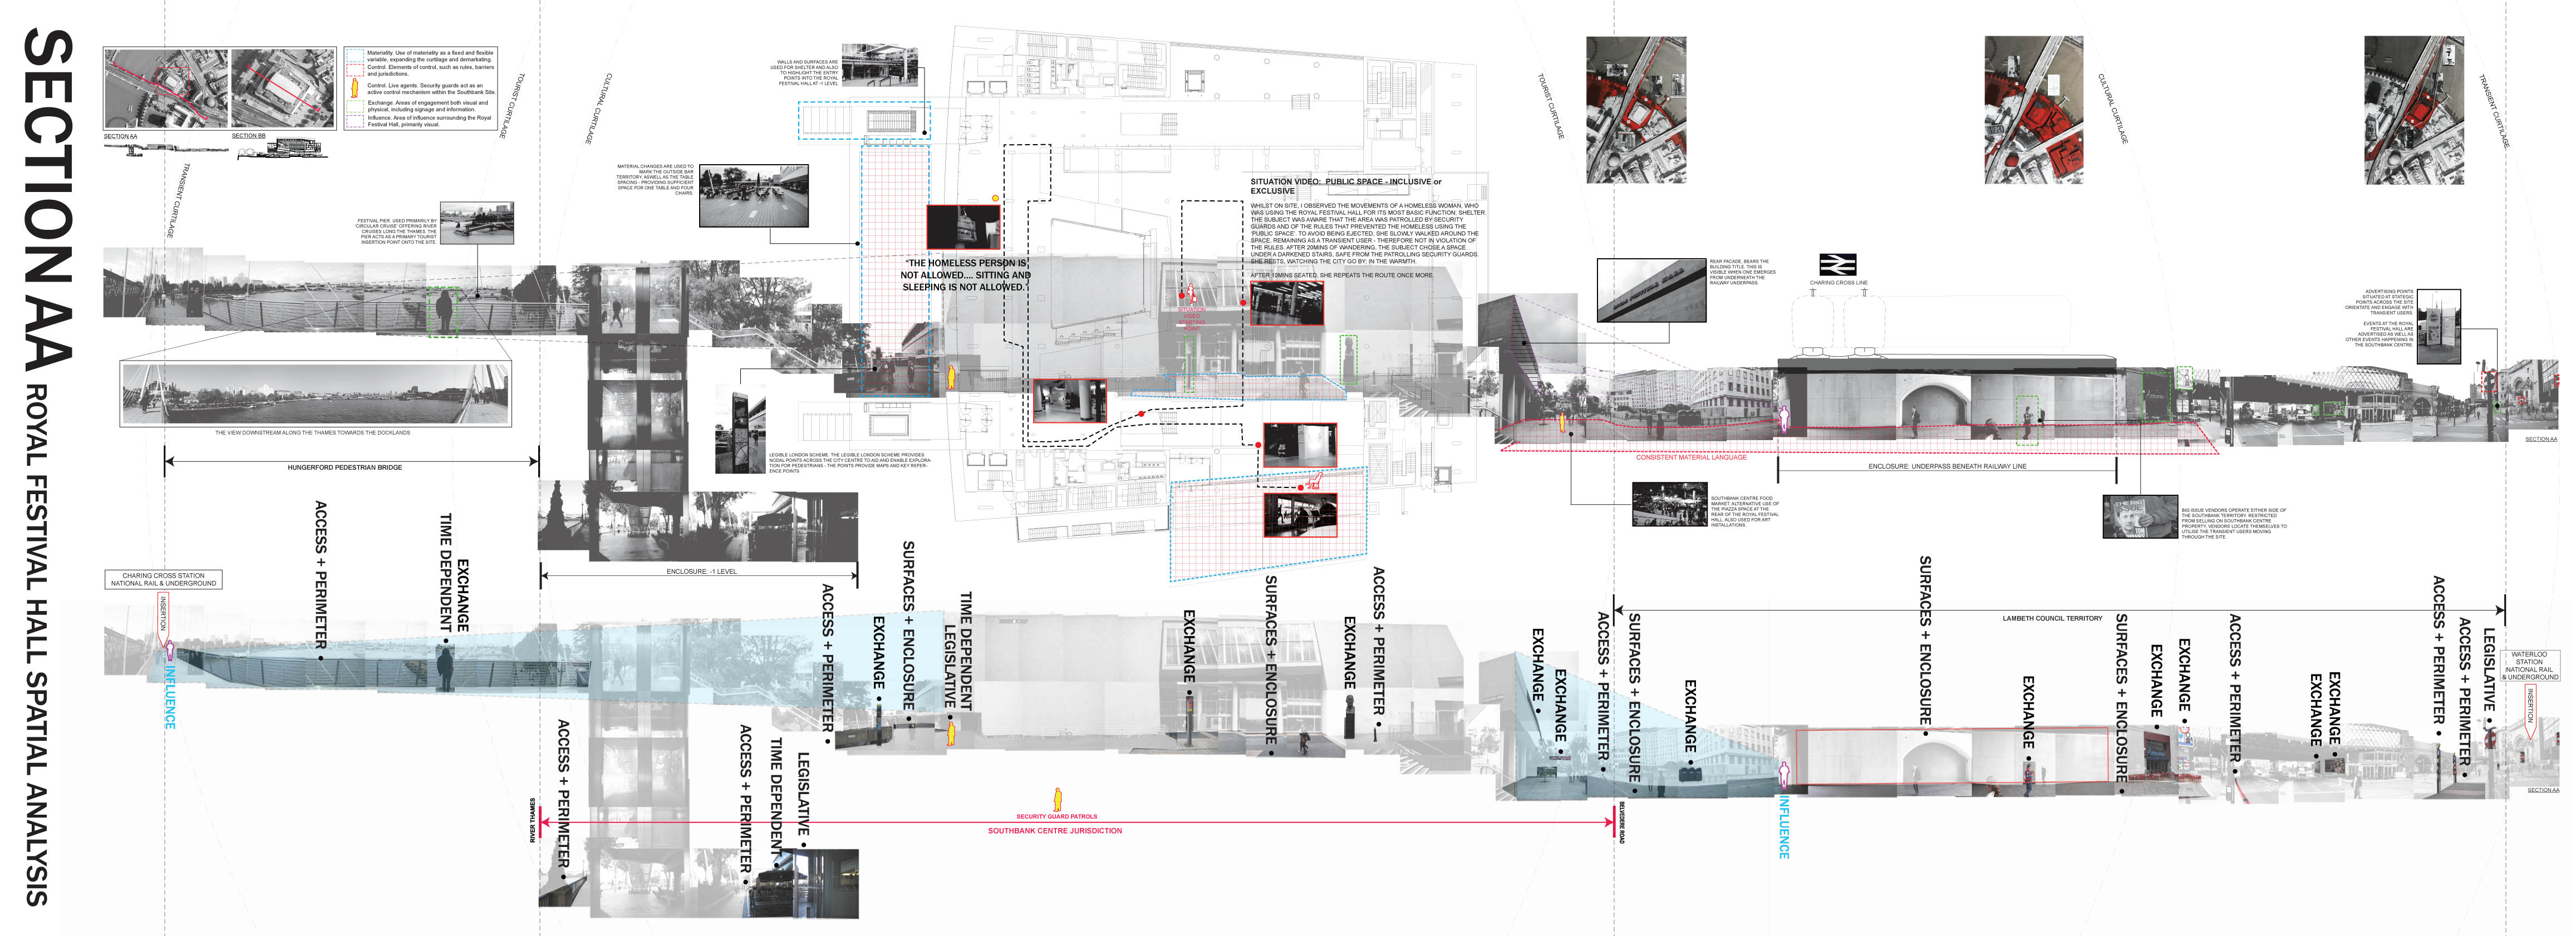 Aa school of architecture projects review 2012 diploma for Spatial analysis architecture